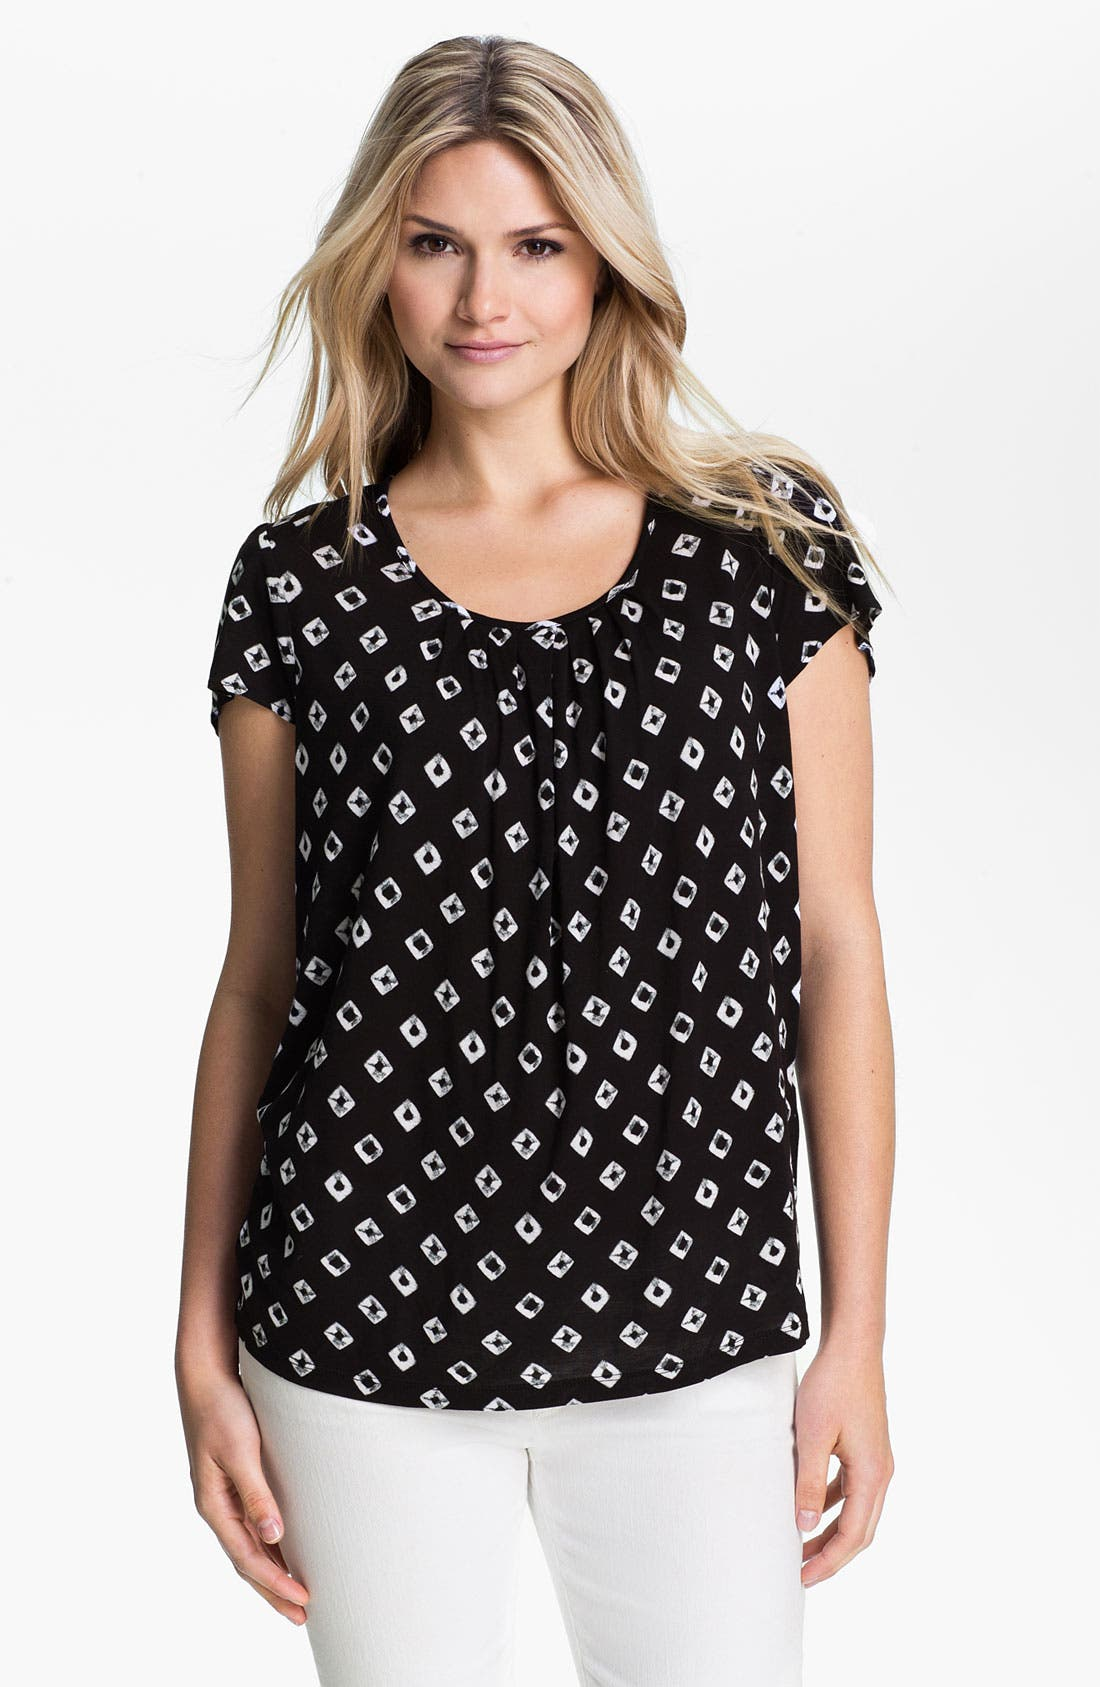 Alternate Image 1 Selected - MICHAEL Michael Kors 'Diamond' Print Flutter Sleeve Top